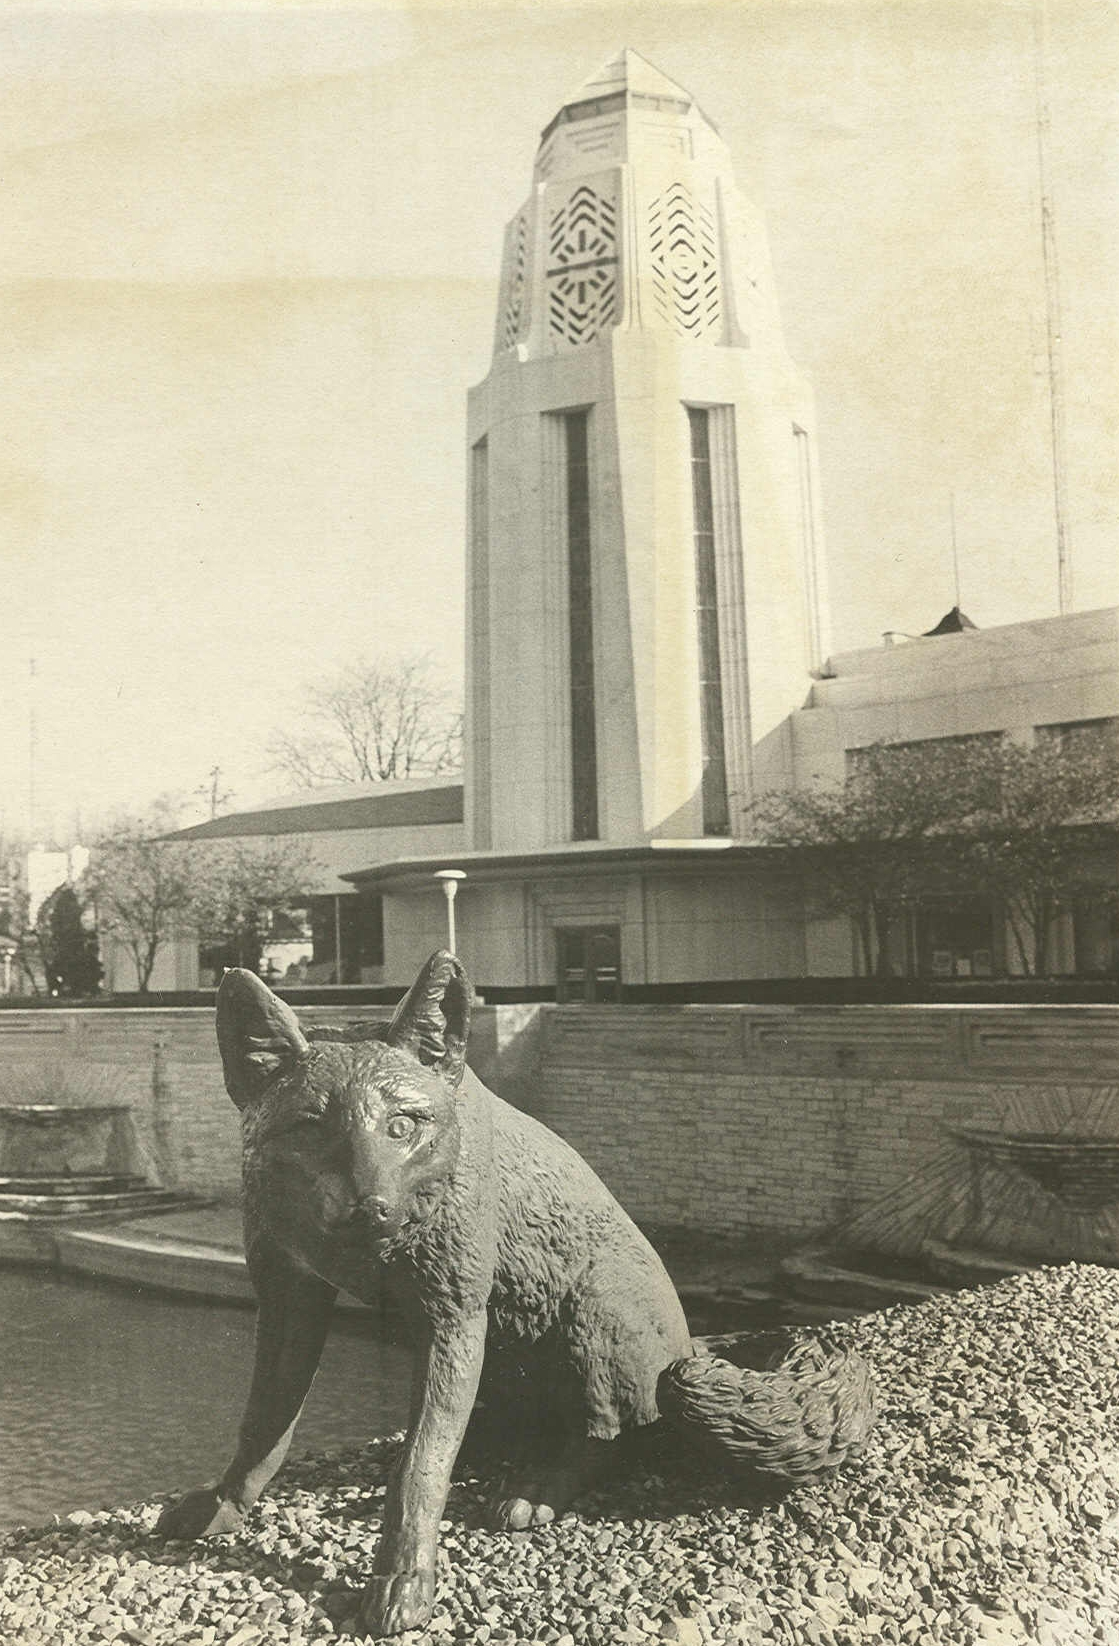 Herbert P. Crane was the son of Richard T. Crane, founder of Crane Plumbing Company of Chicago. A civic leader in St. Charles, it was Herbert Crane who, in 1927, donated the four bronze foxes located on the Main Street bridge in St. Charles. c. 1940s.